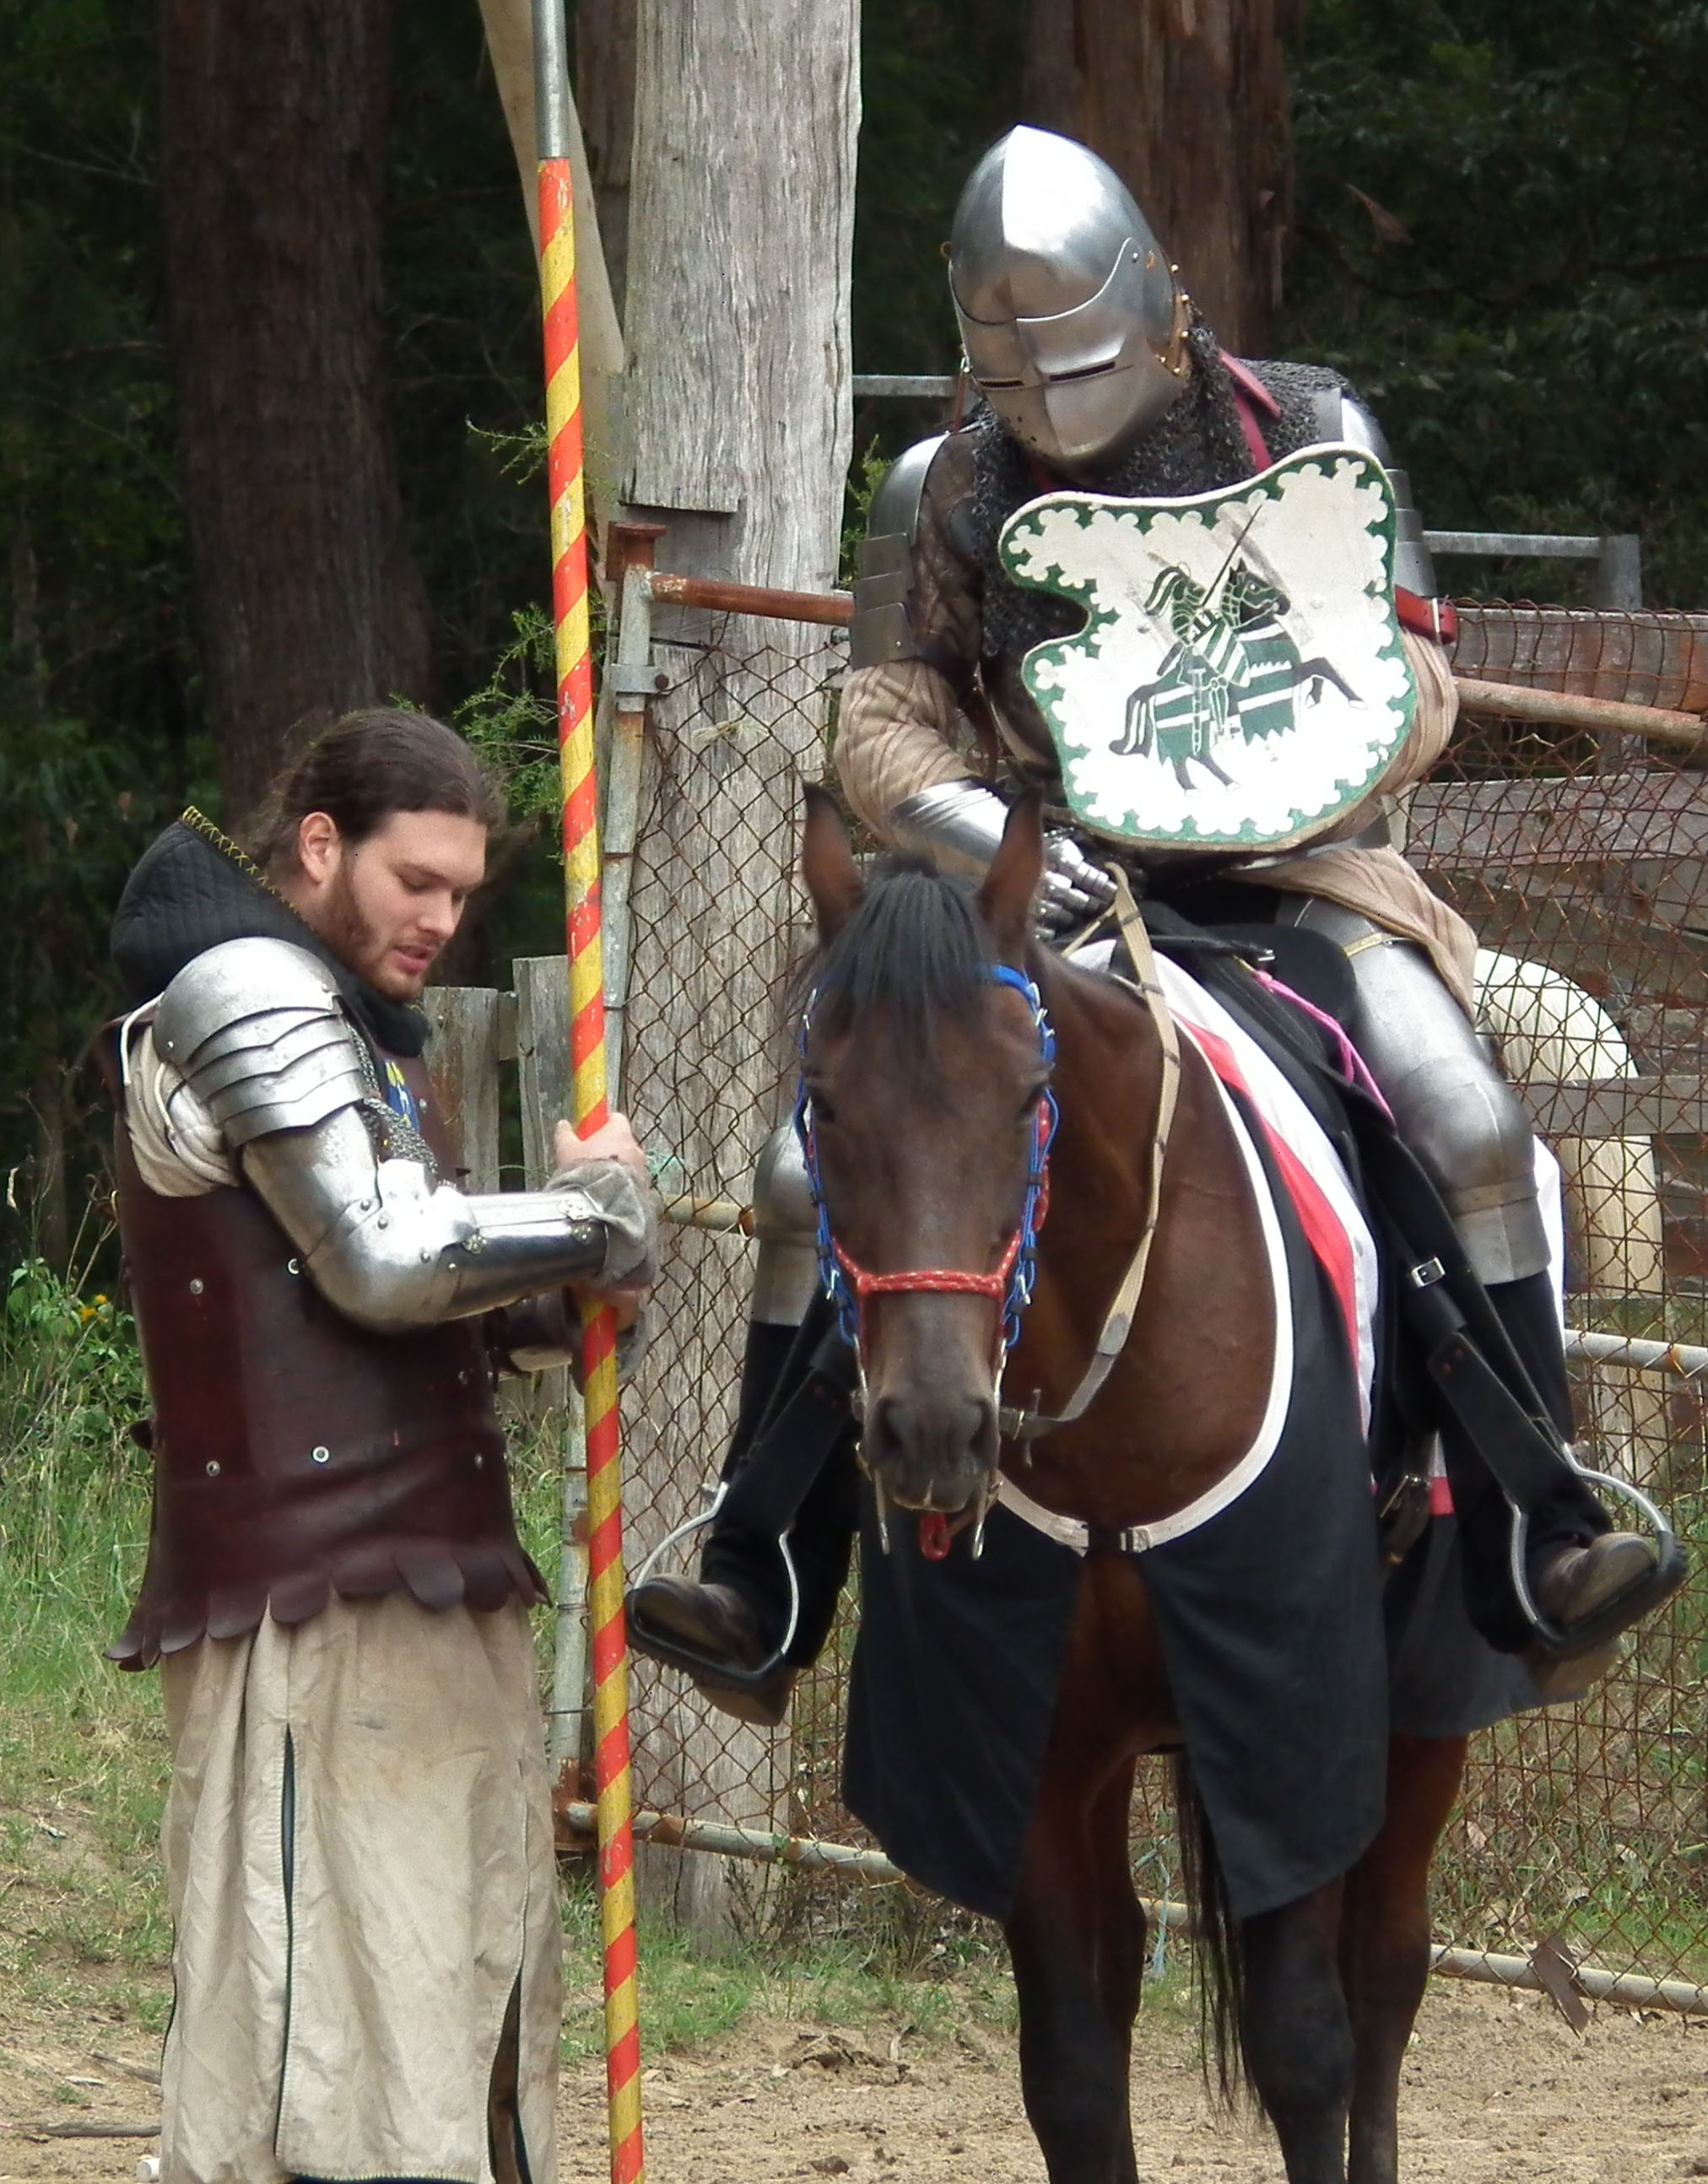 My Son the Medieval Knight | Gallery2020 Publishing